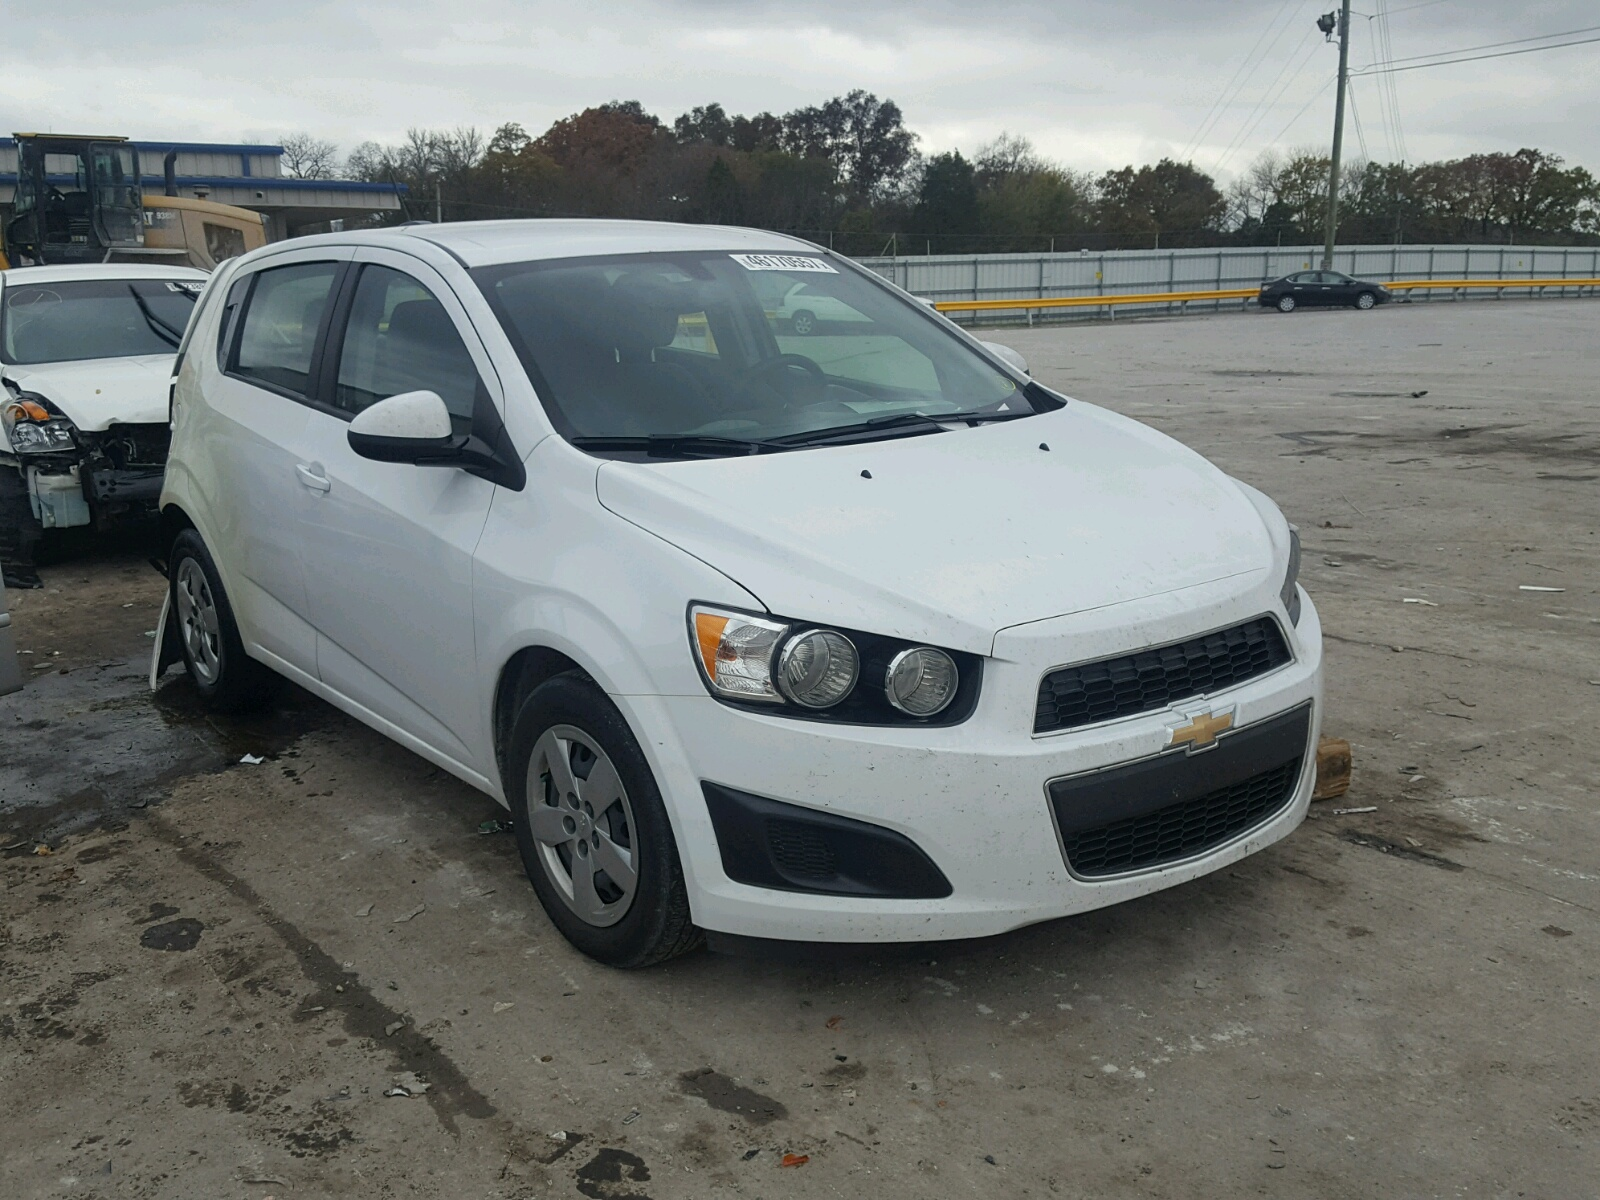 hatchback top cars chevrolet speed sonic